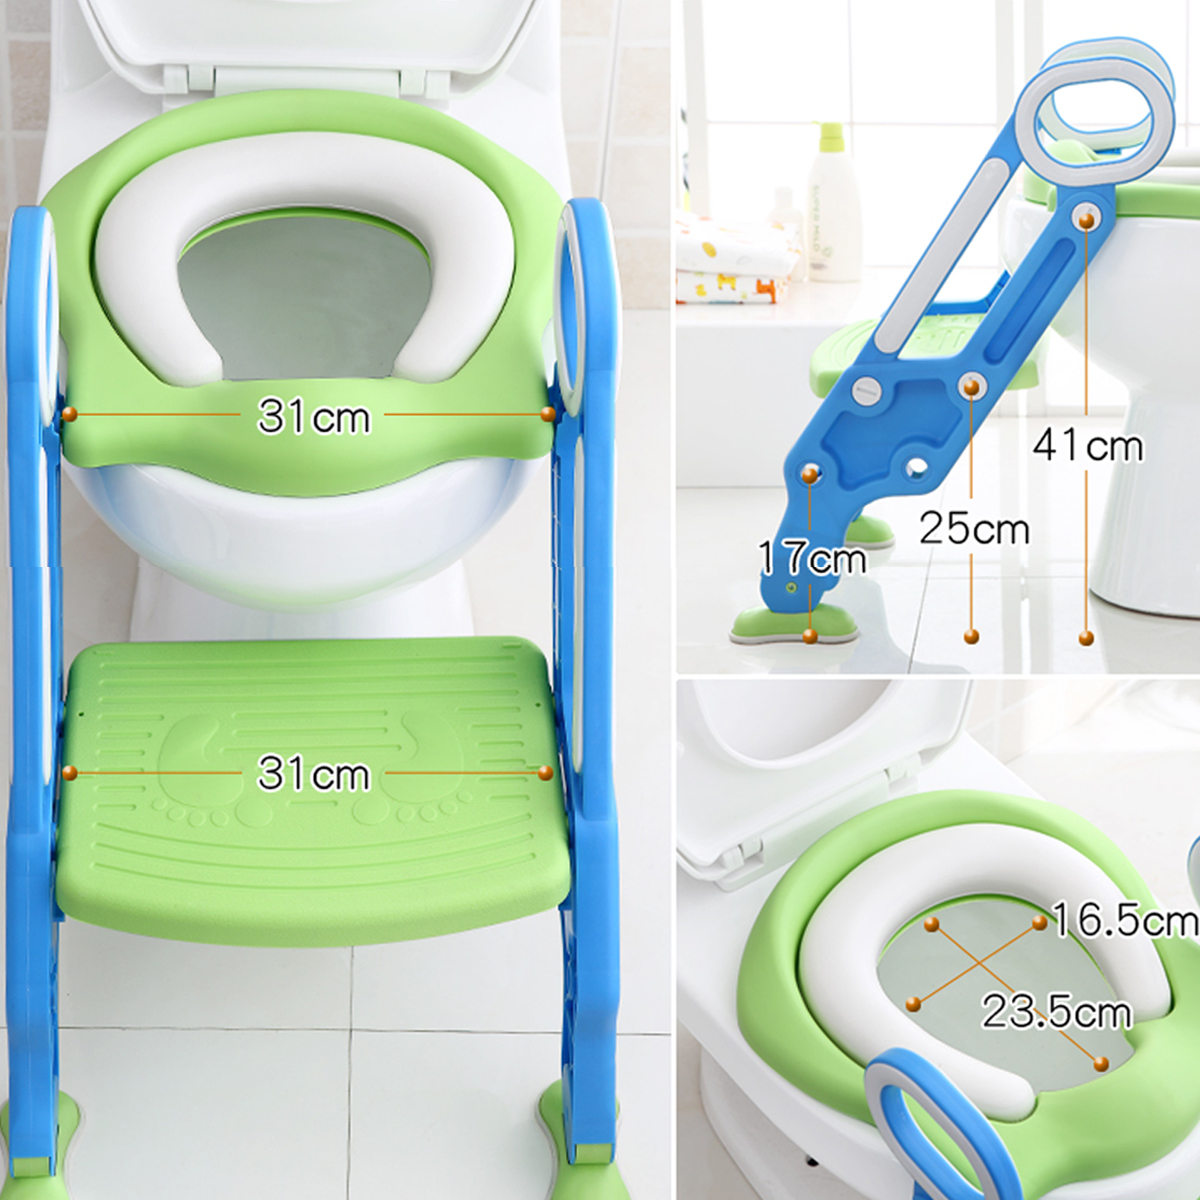 Adjustable Ladder Potty Toilet Trainer Safety Seat Chair Step Infant potty chair Toilet Training Non-slip... by Generic